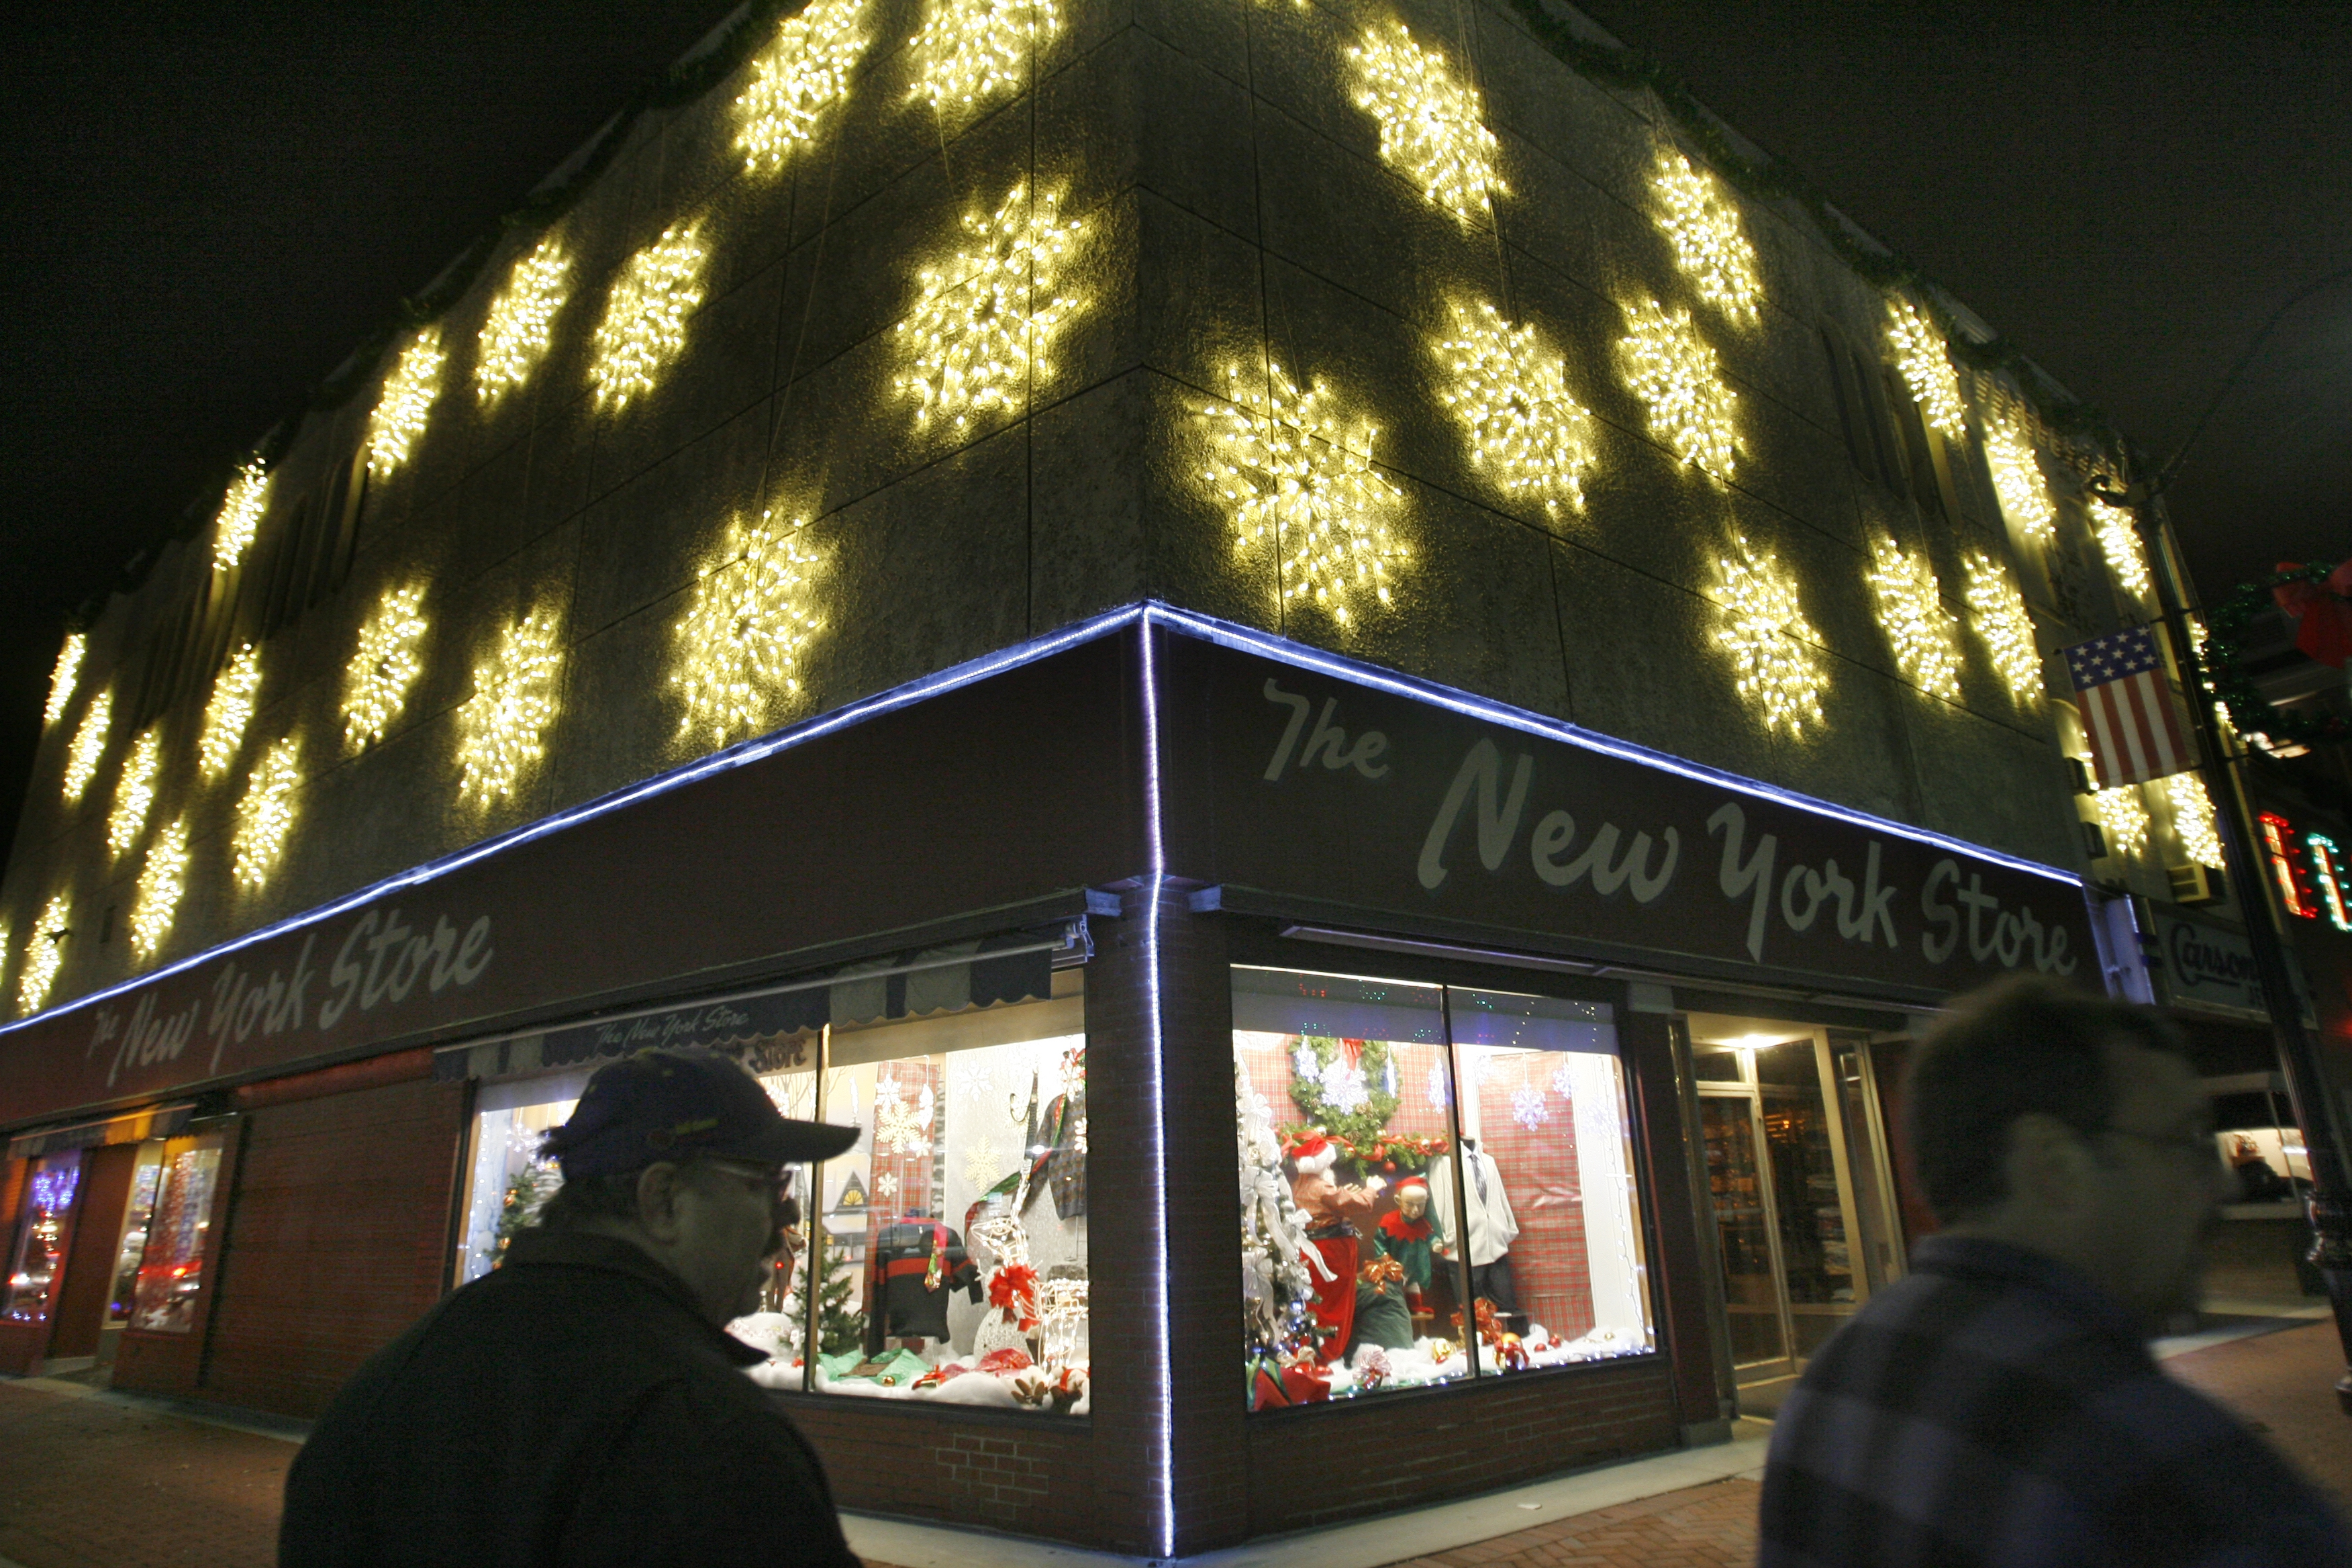 Christmasville on West Main Street has provided the Village of Lancaster with a decade of seasonal brightness, but costs related to damage from last winter are threatening its fate.